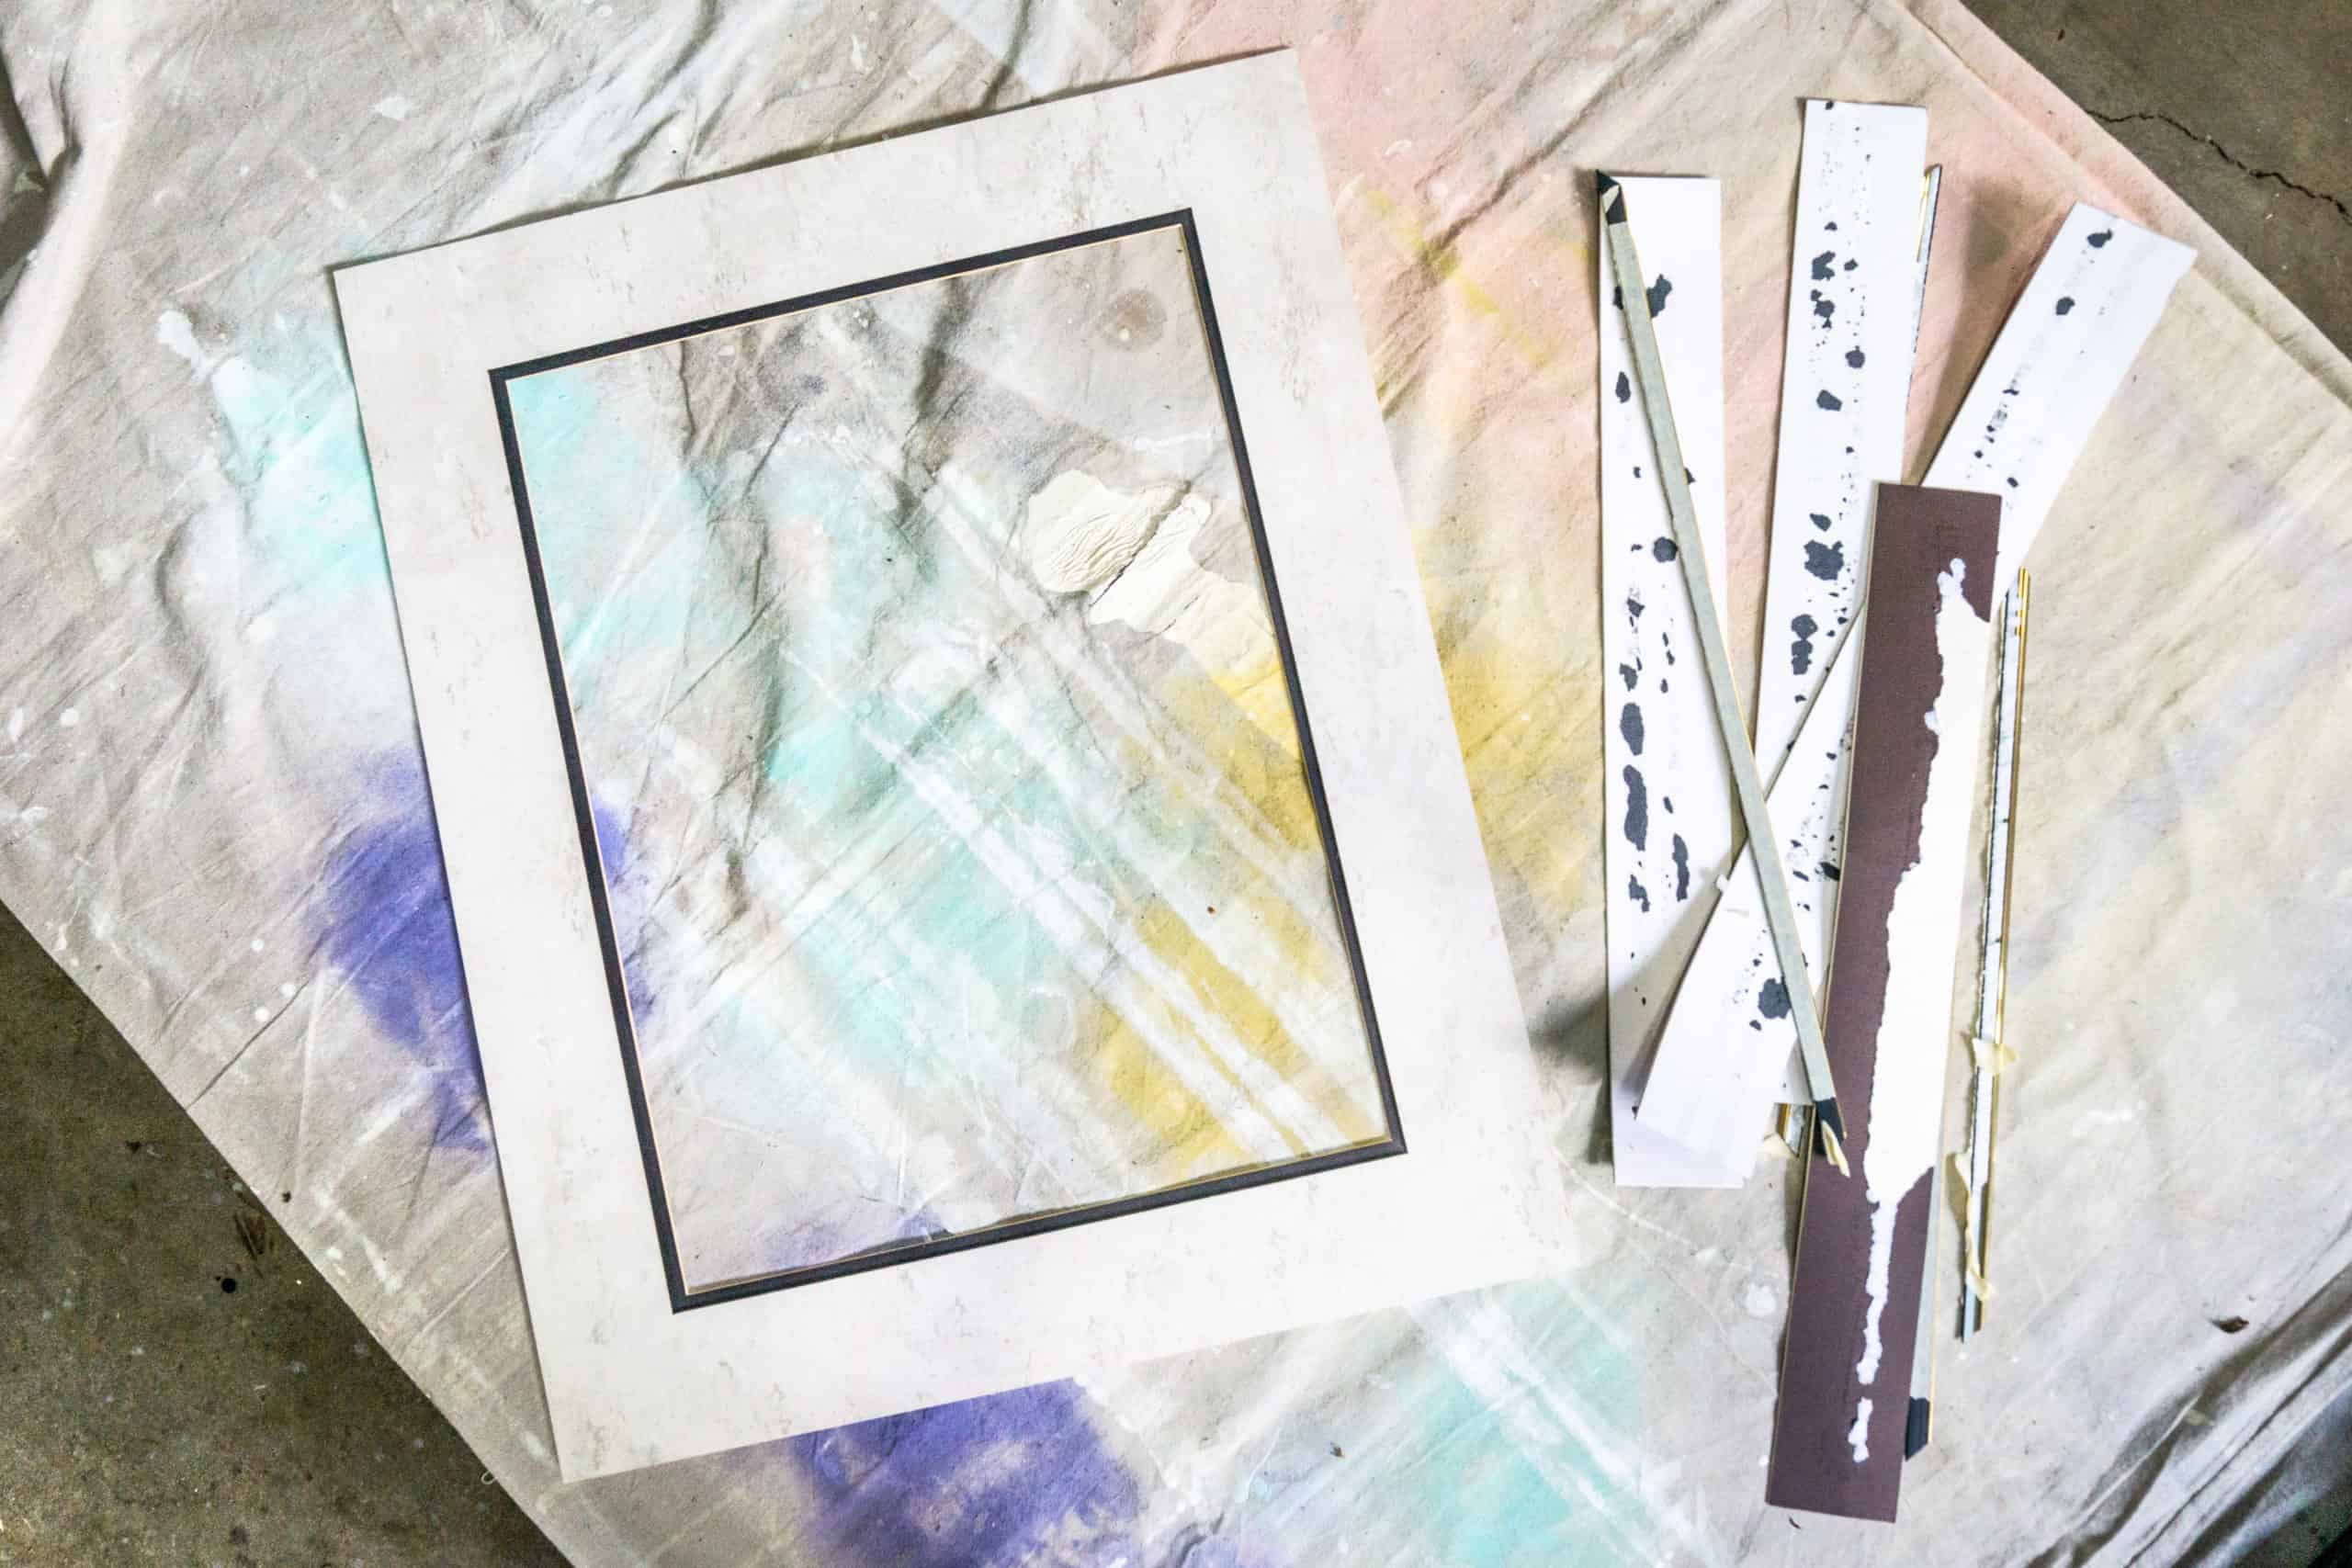 This step-by-step tutorial shows you just how easy it is to cheaply update framed art, in order to better match your decor.